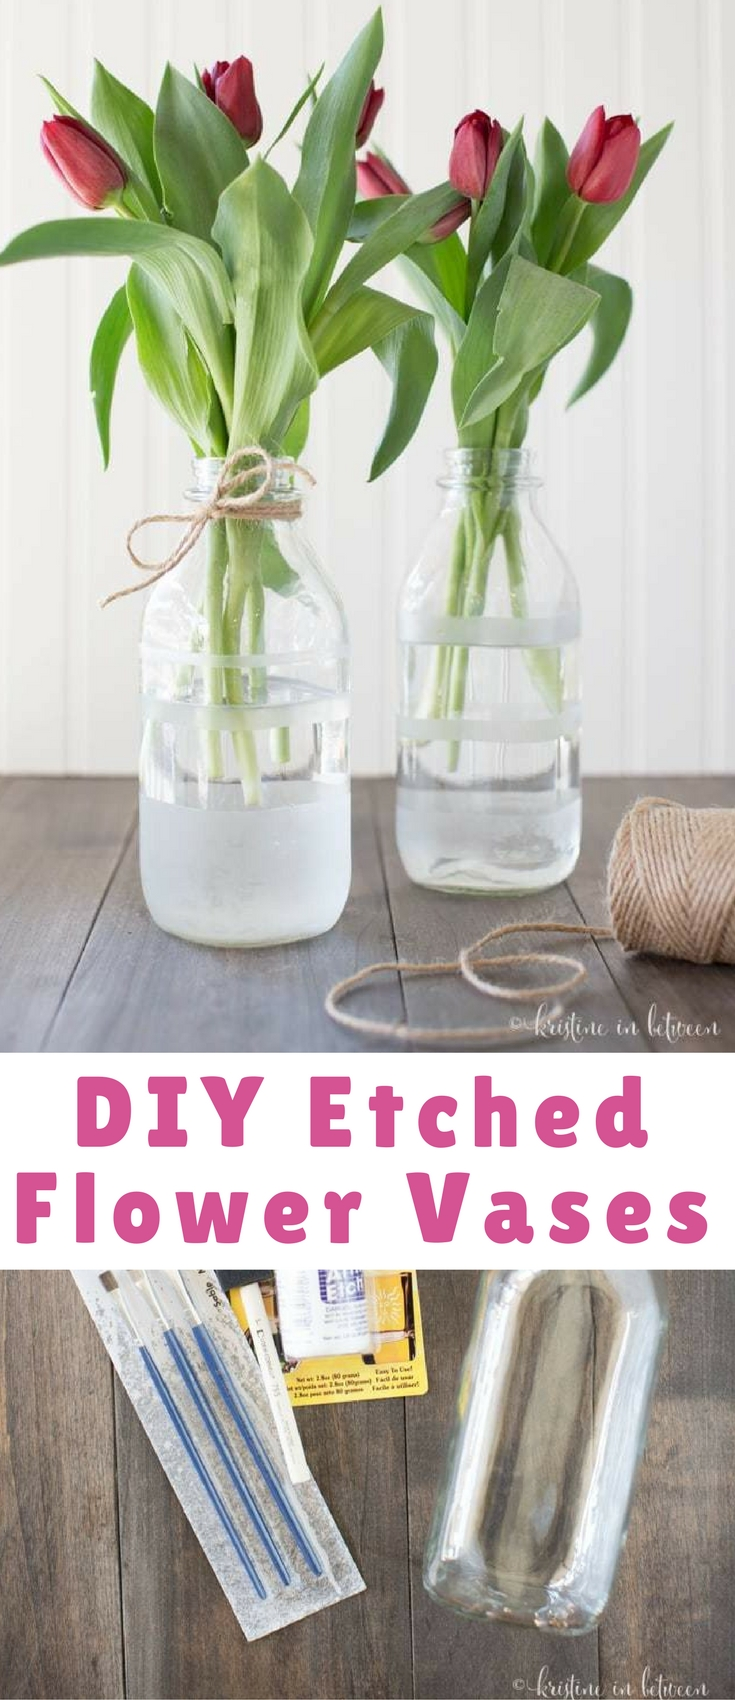 These pretty little farmhouse DIY etched flower vases will look perfect on your kitchen counter this spring!